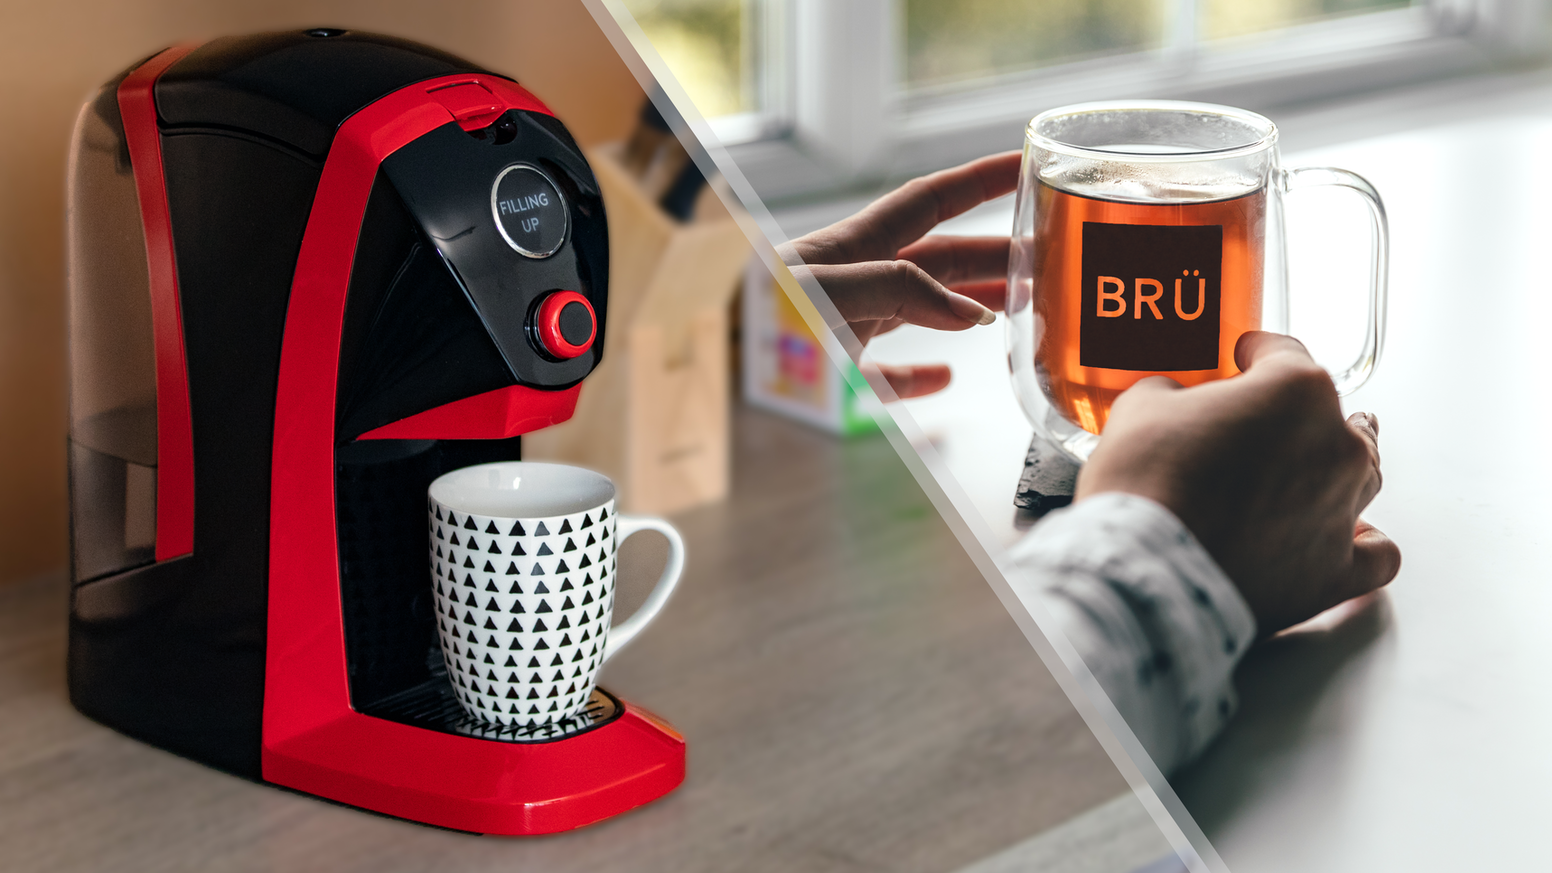 BRÜ makes the perfect cup of tea at the push of a button. Use ANY tea. Set temperature, cup size & brew time. Saving you time & energy.